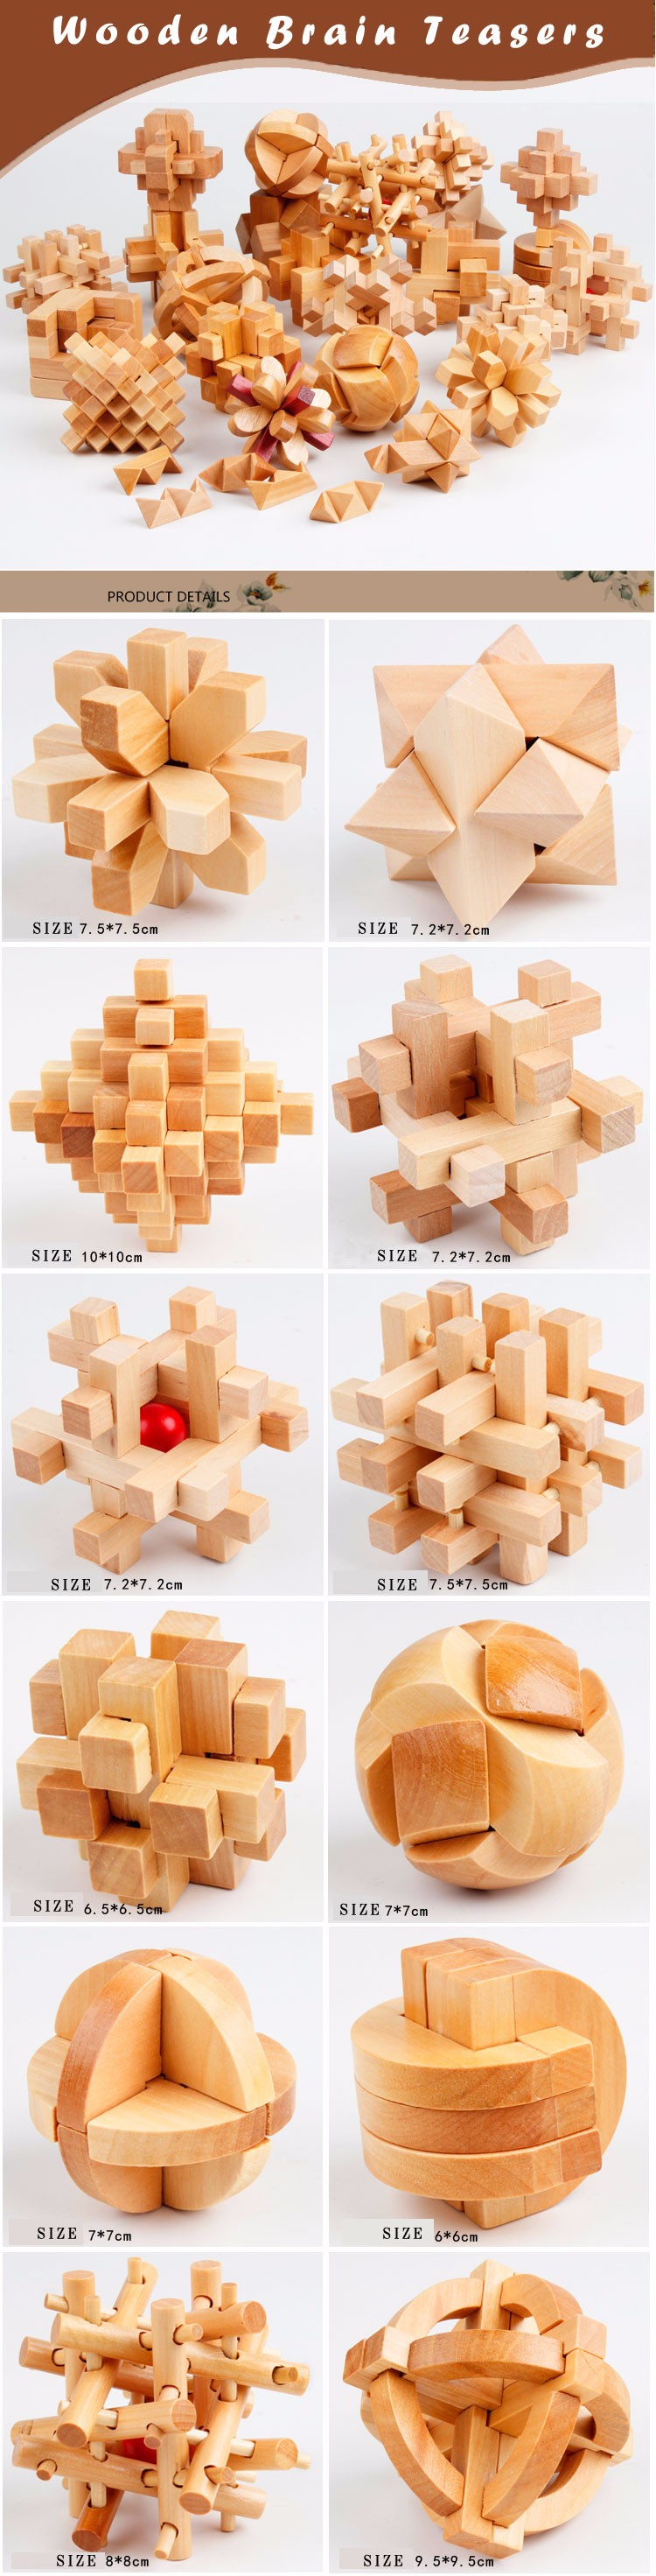 High Quality Wooden Toy Chinese Classic Kids Toys Educational Lock Puzzle  Creativity Developing Blocks Set With Box - Buy Wooden Toys,Kids Toys,Brain